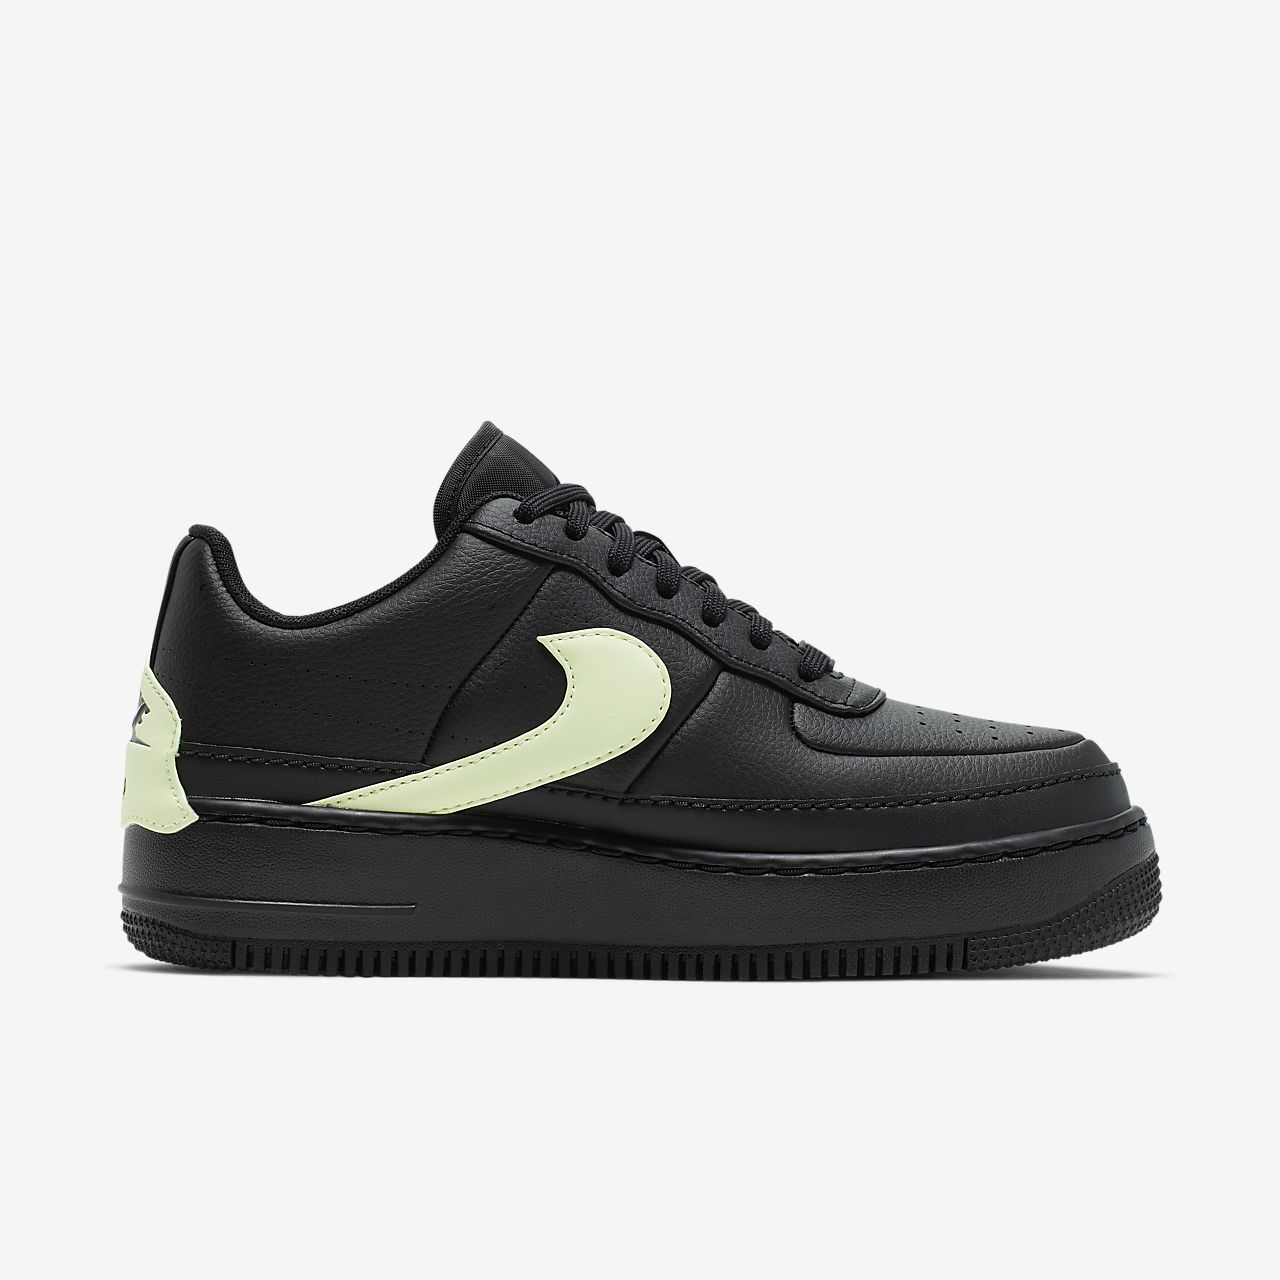 Pour Xx Force Air Jester Femme Chaussure Nike 1 WD2E9IHY